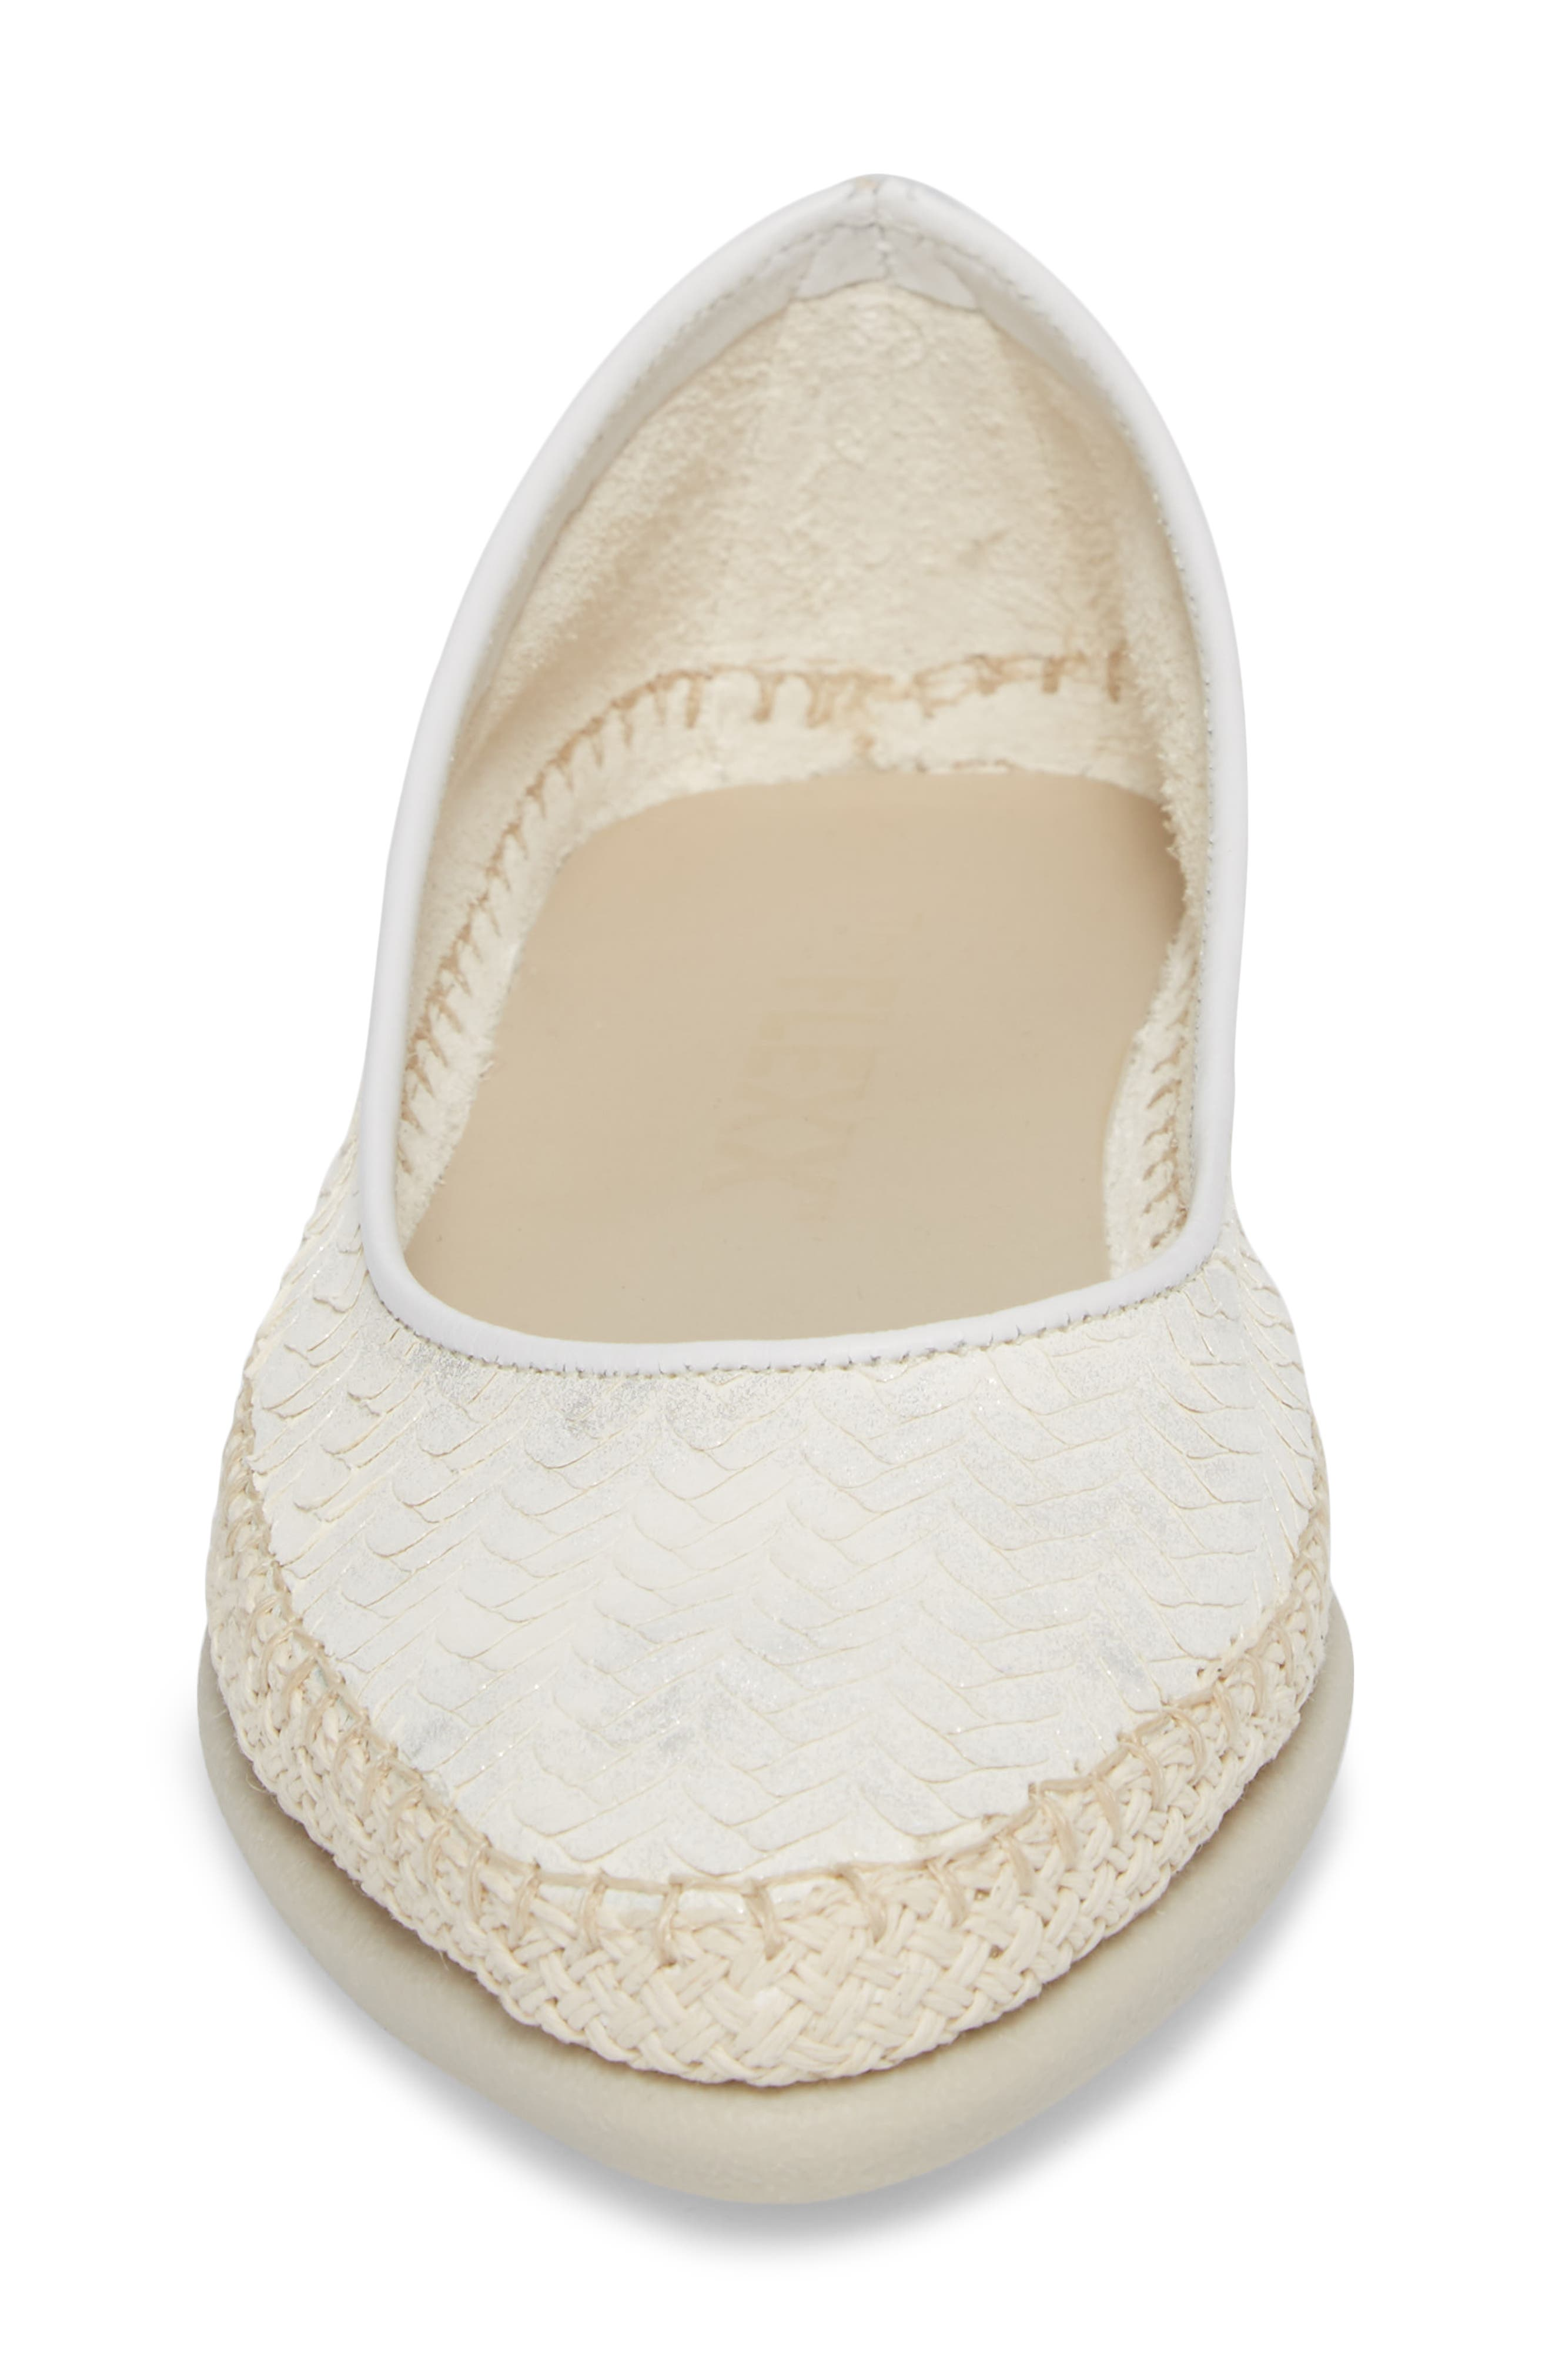 'Torri' Perforated Espadrille Flat,                             Alternate thumbnail 6, color,                             Pearl Leather